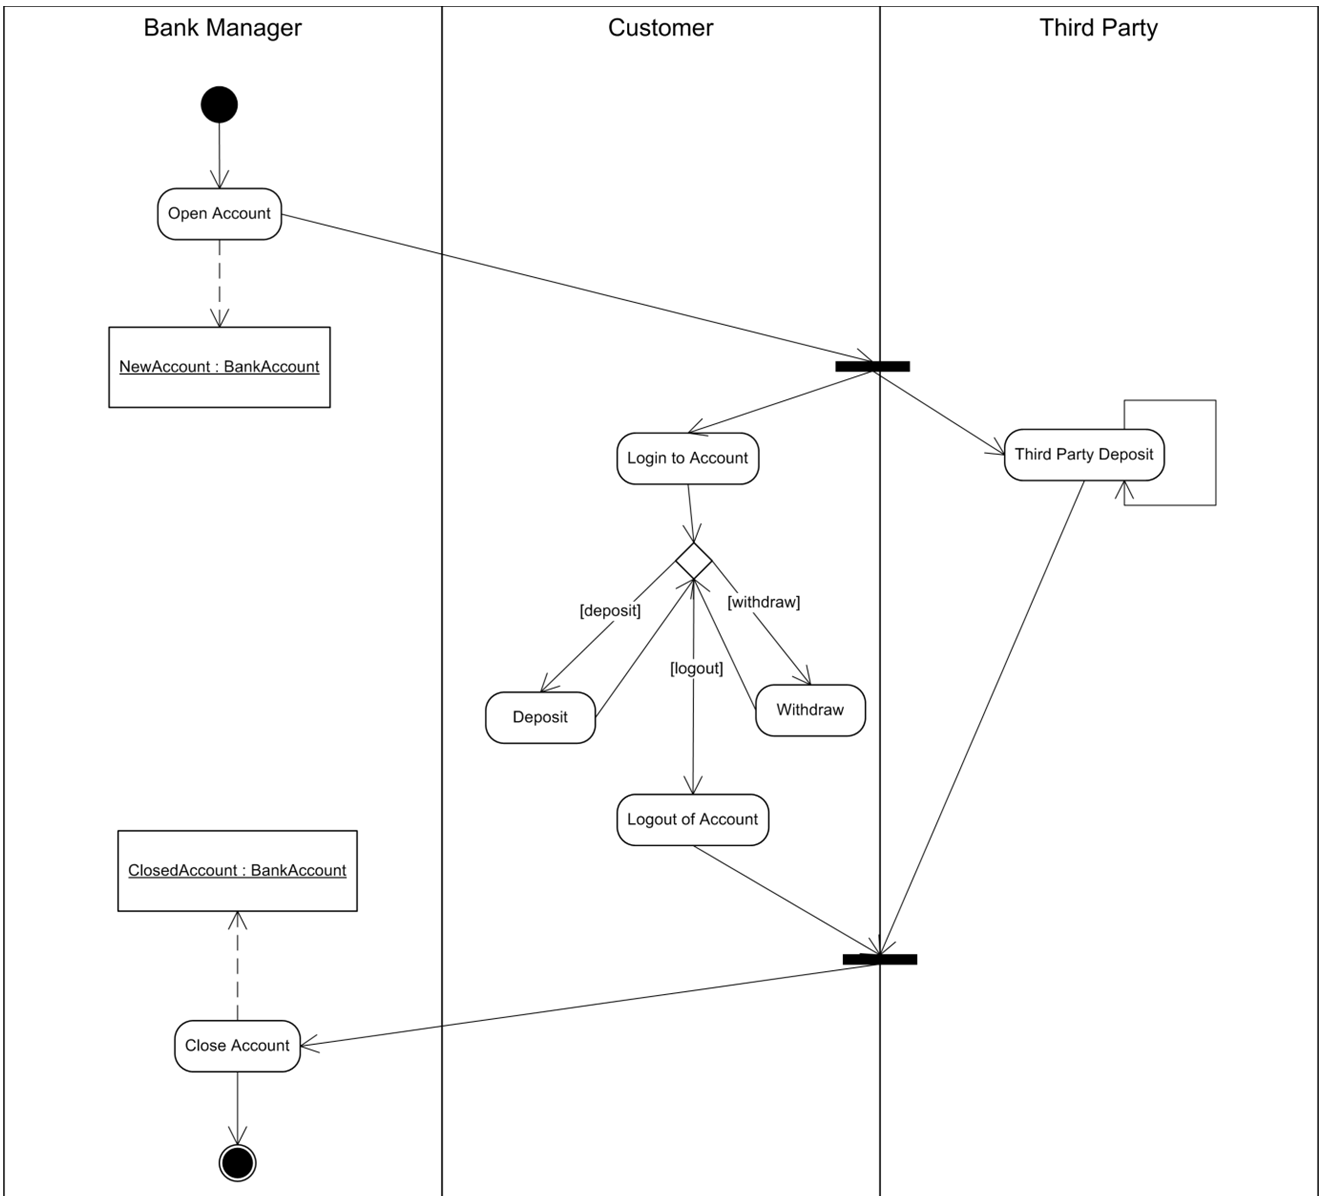 end to end uml  activity diagram  gt  business analyst community    end to end uml   activity diagram